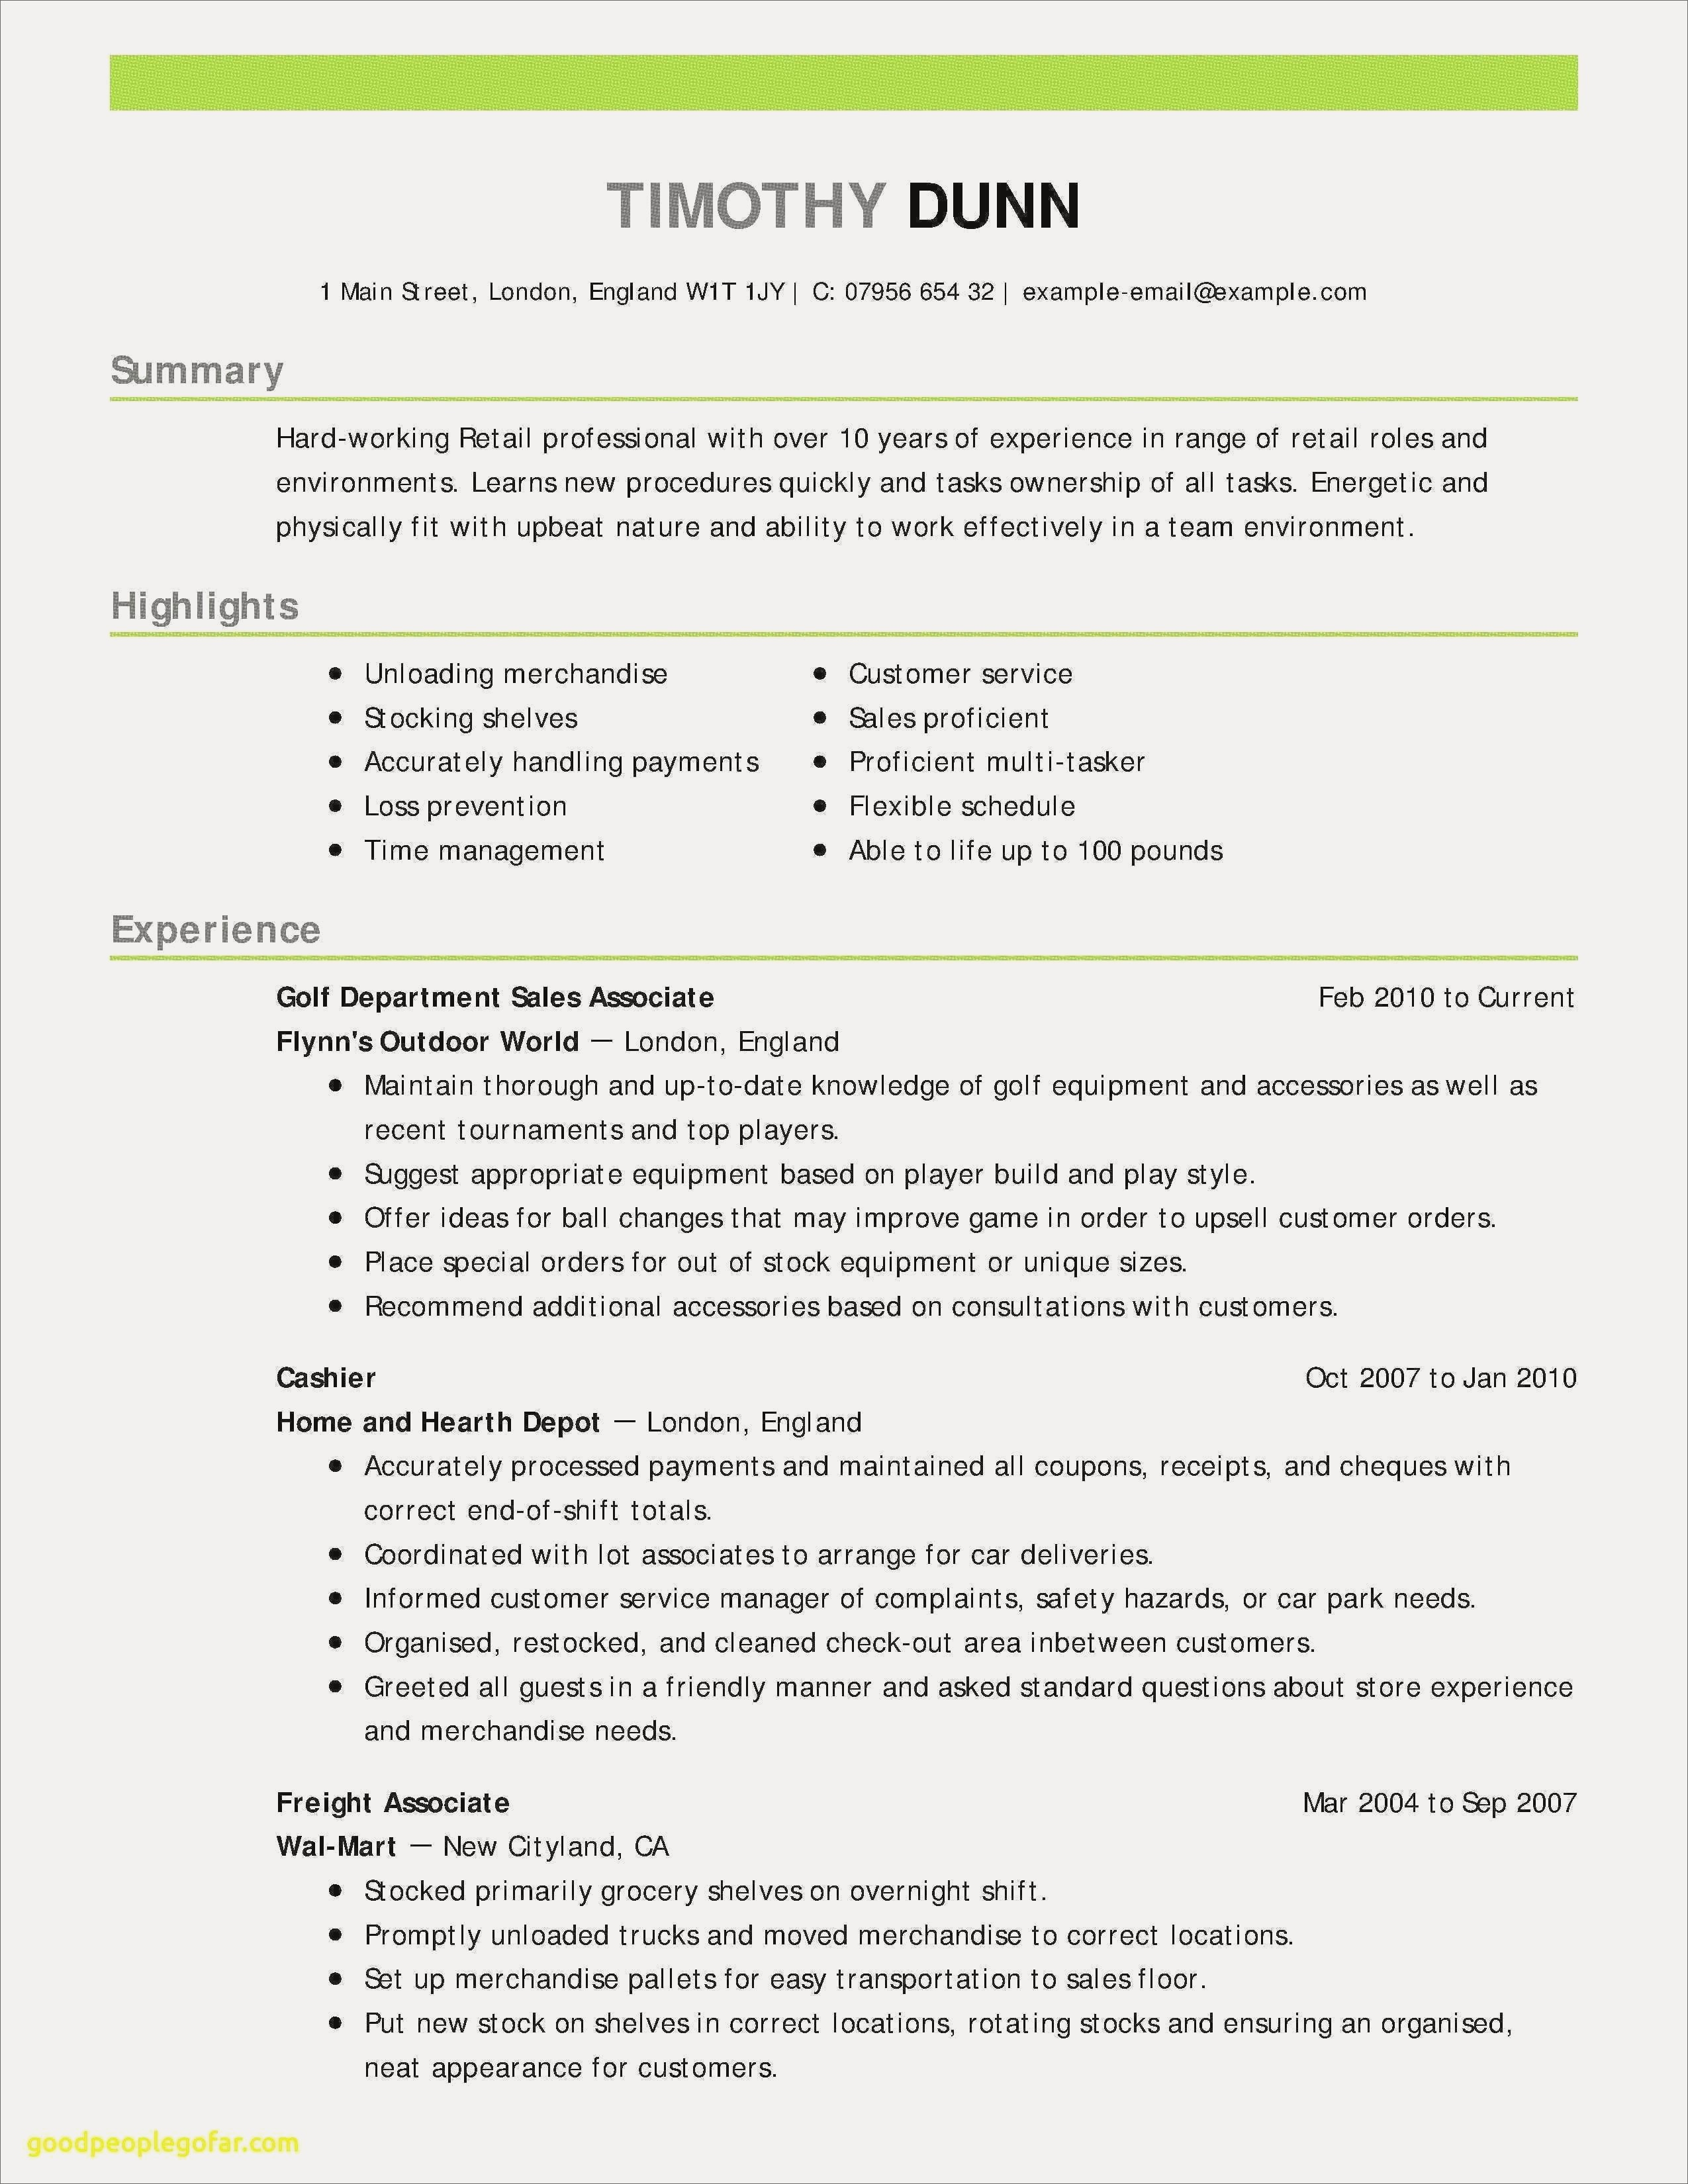 Service Industry Resume Sample - Valet Parking Resume Sample Refrence Customer Service Resume Sample